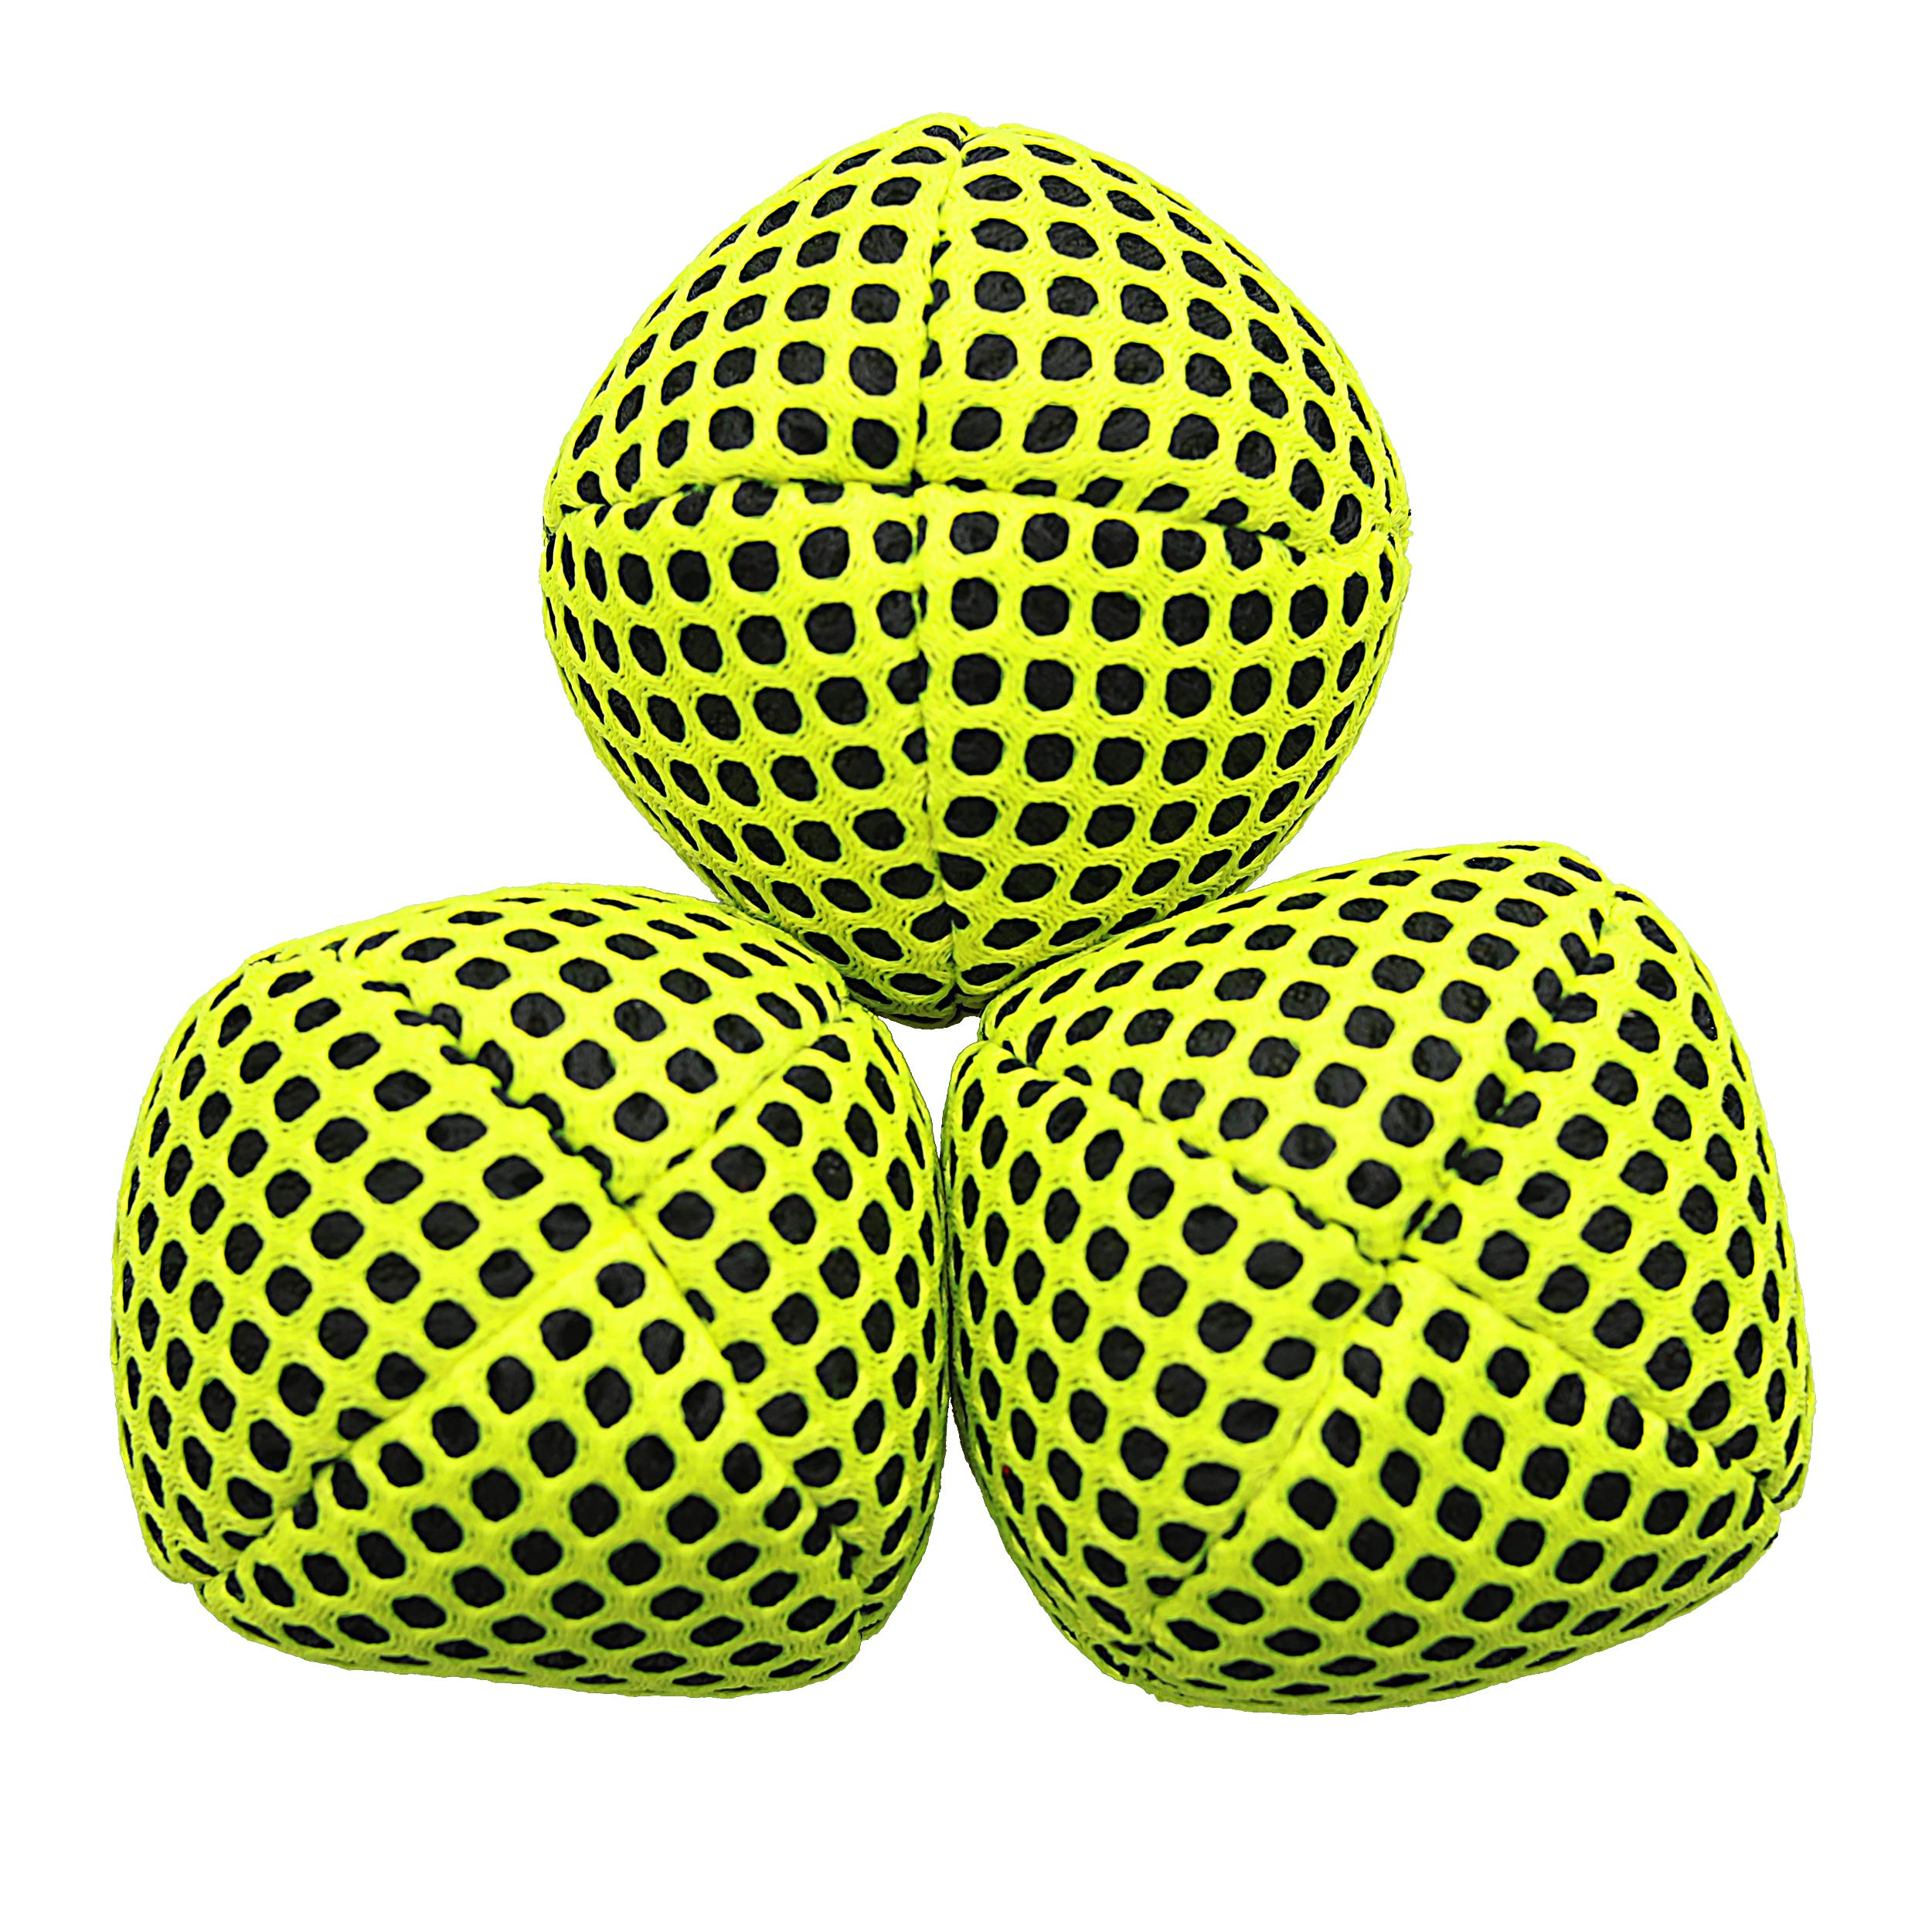 Speevers Juggling Balls for Beginners and Professional, 2019 XBalls Set of 3 Fresh Design - 5 Beautiful Uni Colors Available, 2 Layers of Net Carry Case, Choice of The World Champions 120g (Yellow)